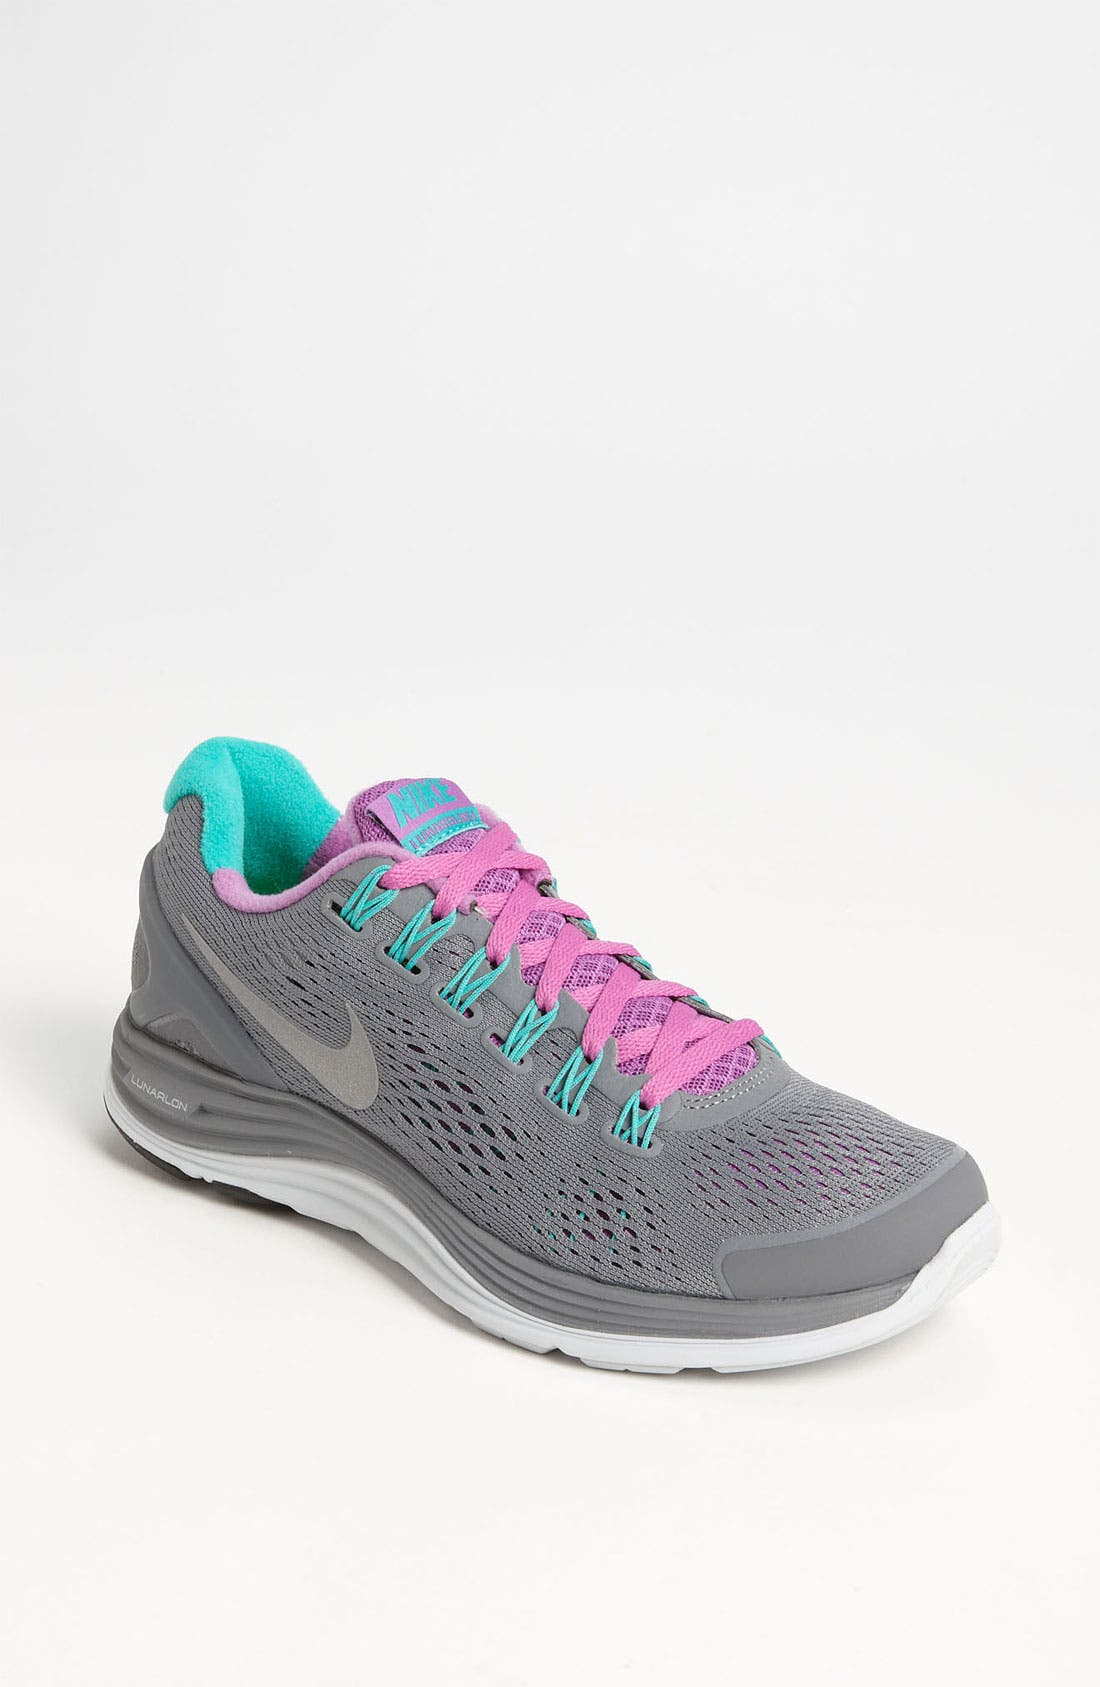 Alternate Image 1 Selected - Nike 'LunarGlide+ 4' Running Shoe (Women)